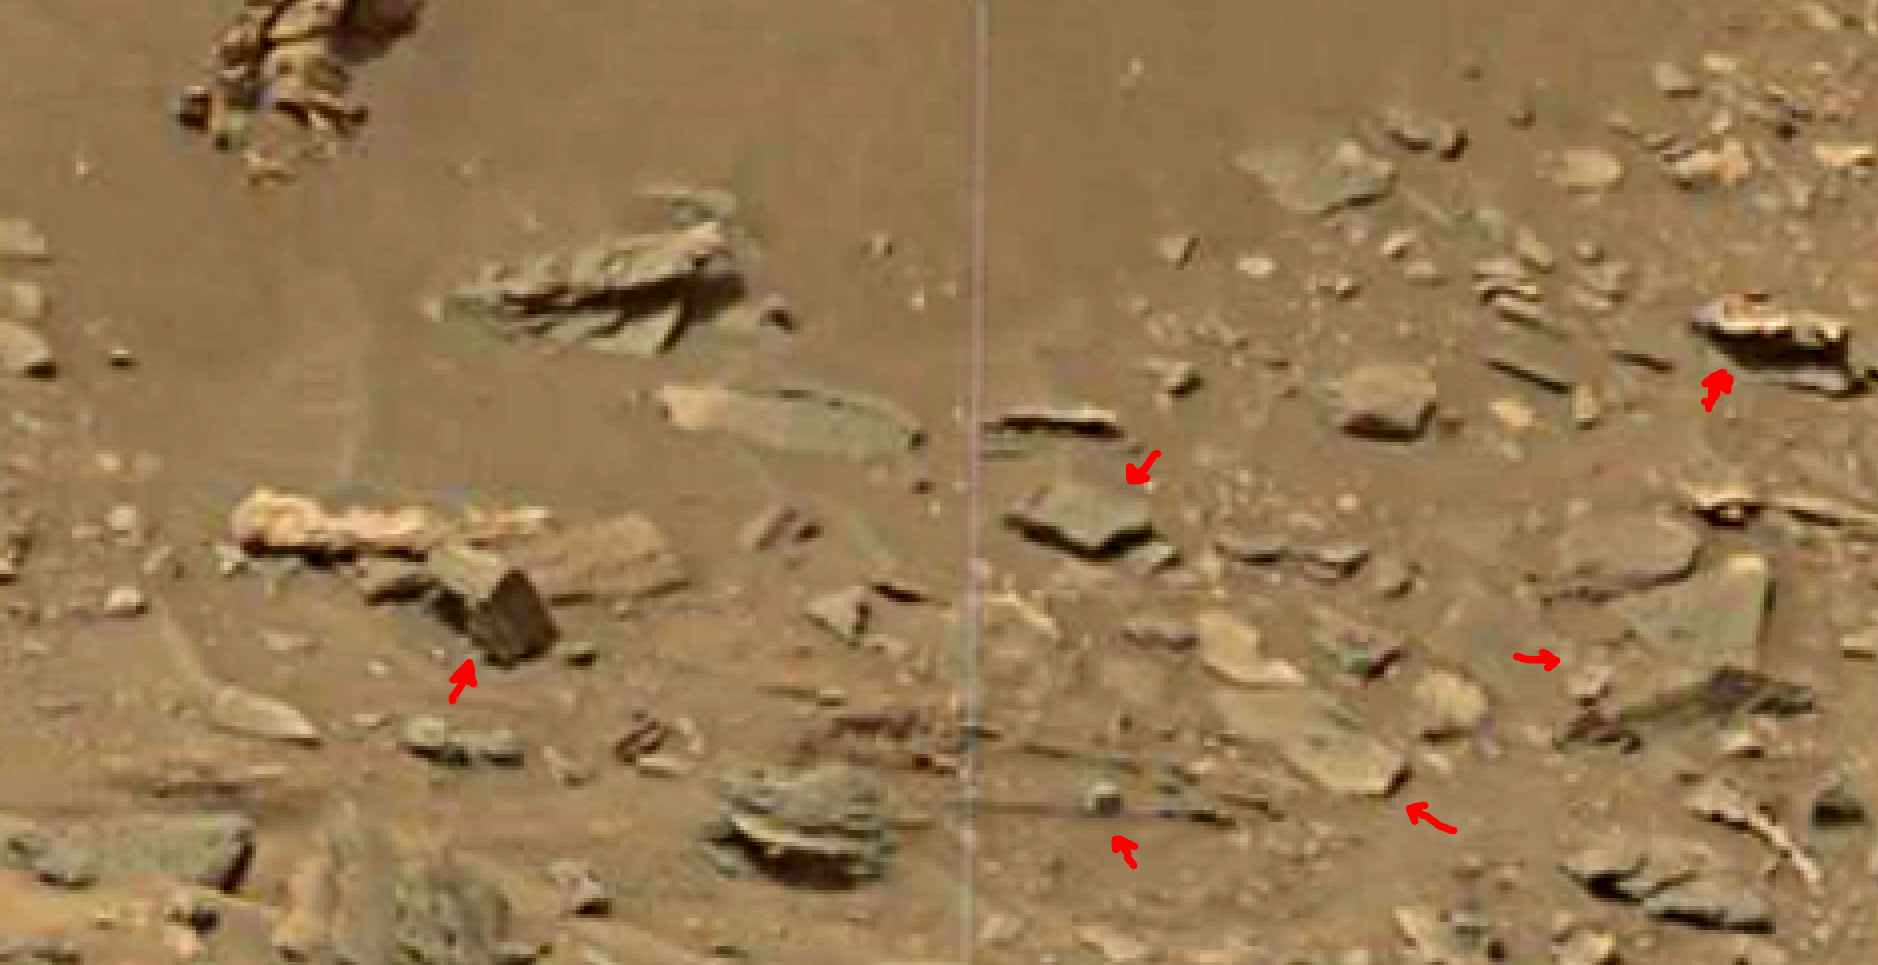 mars-sol-1451-anomaly-artifacts-4-was-life-on-mars